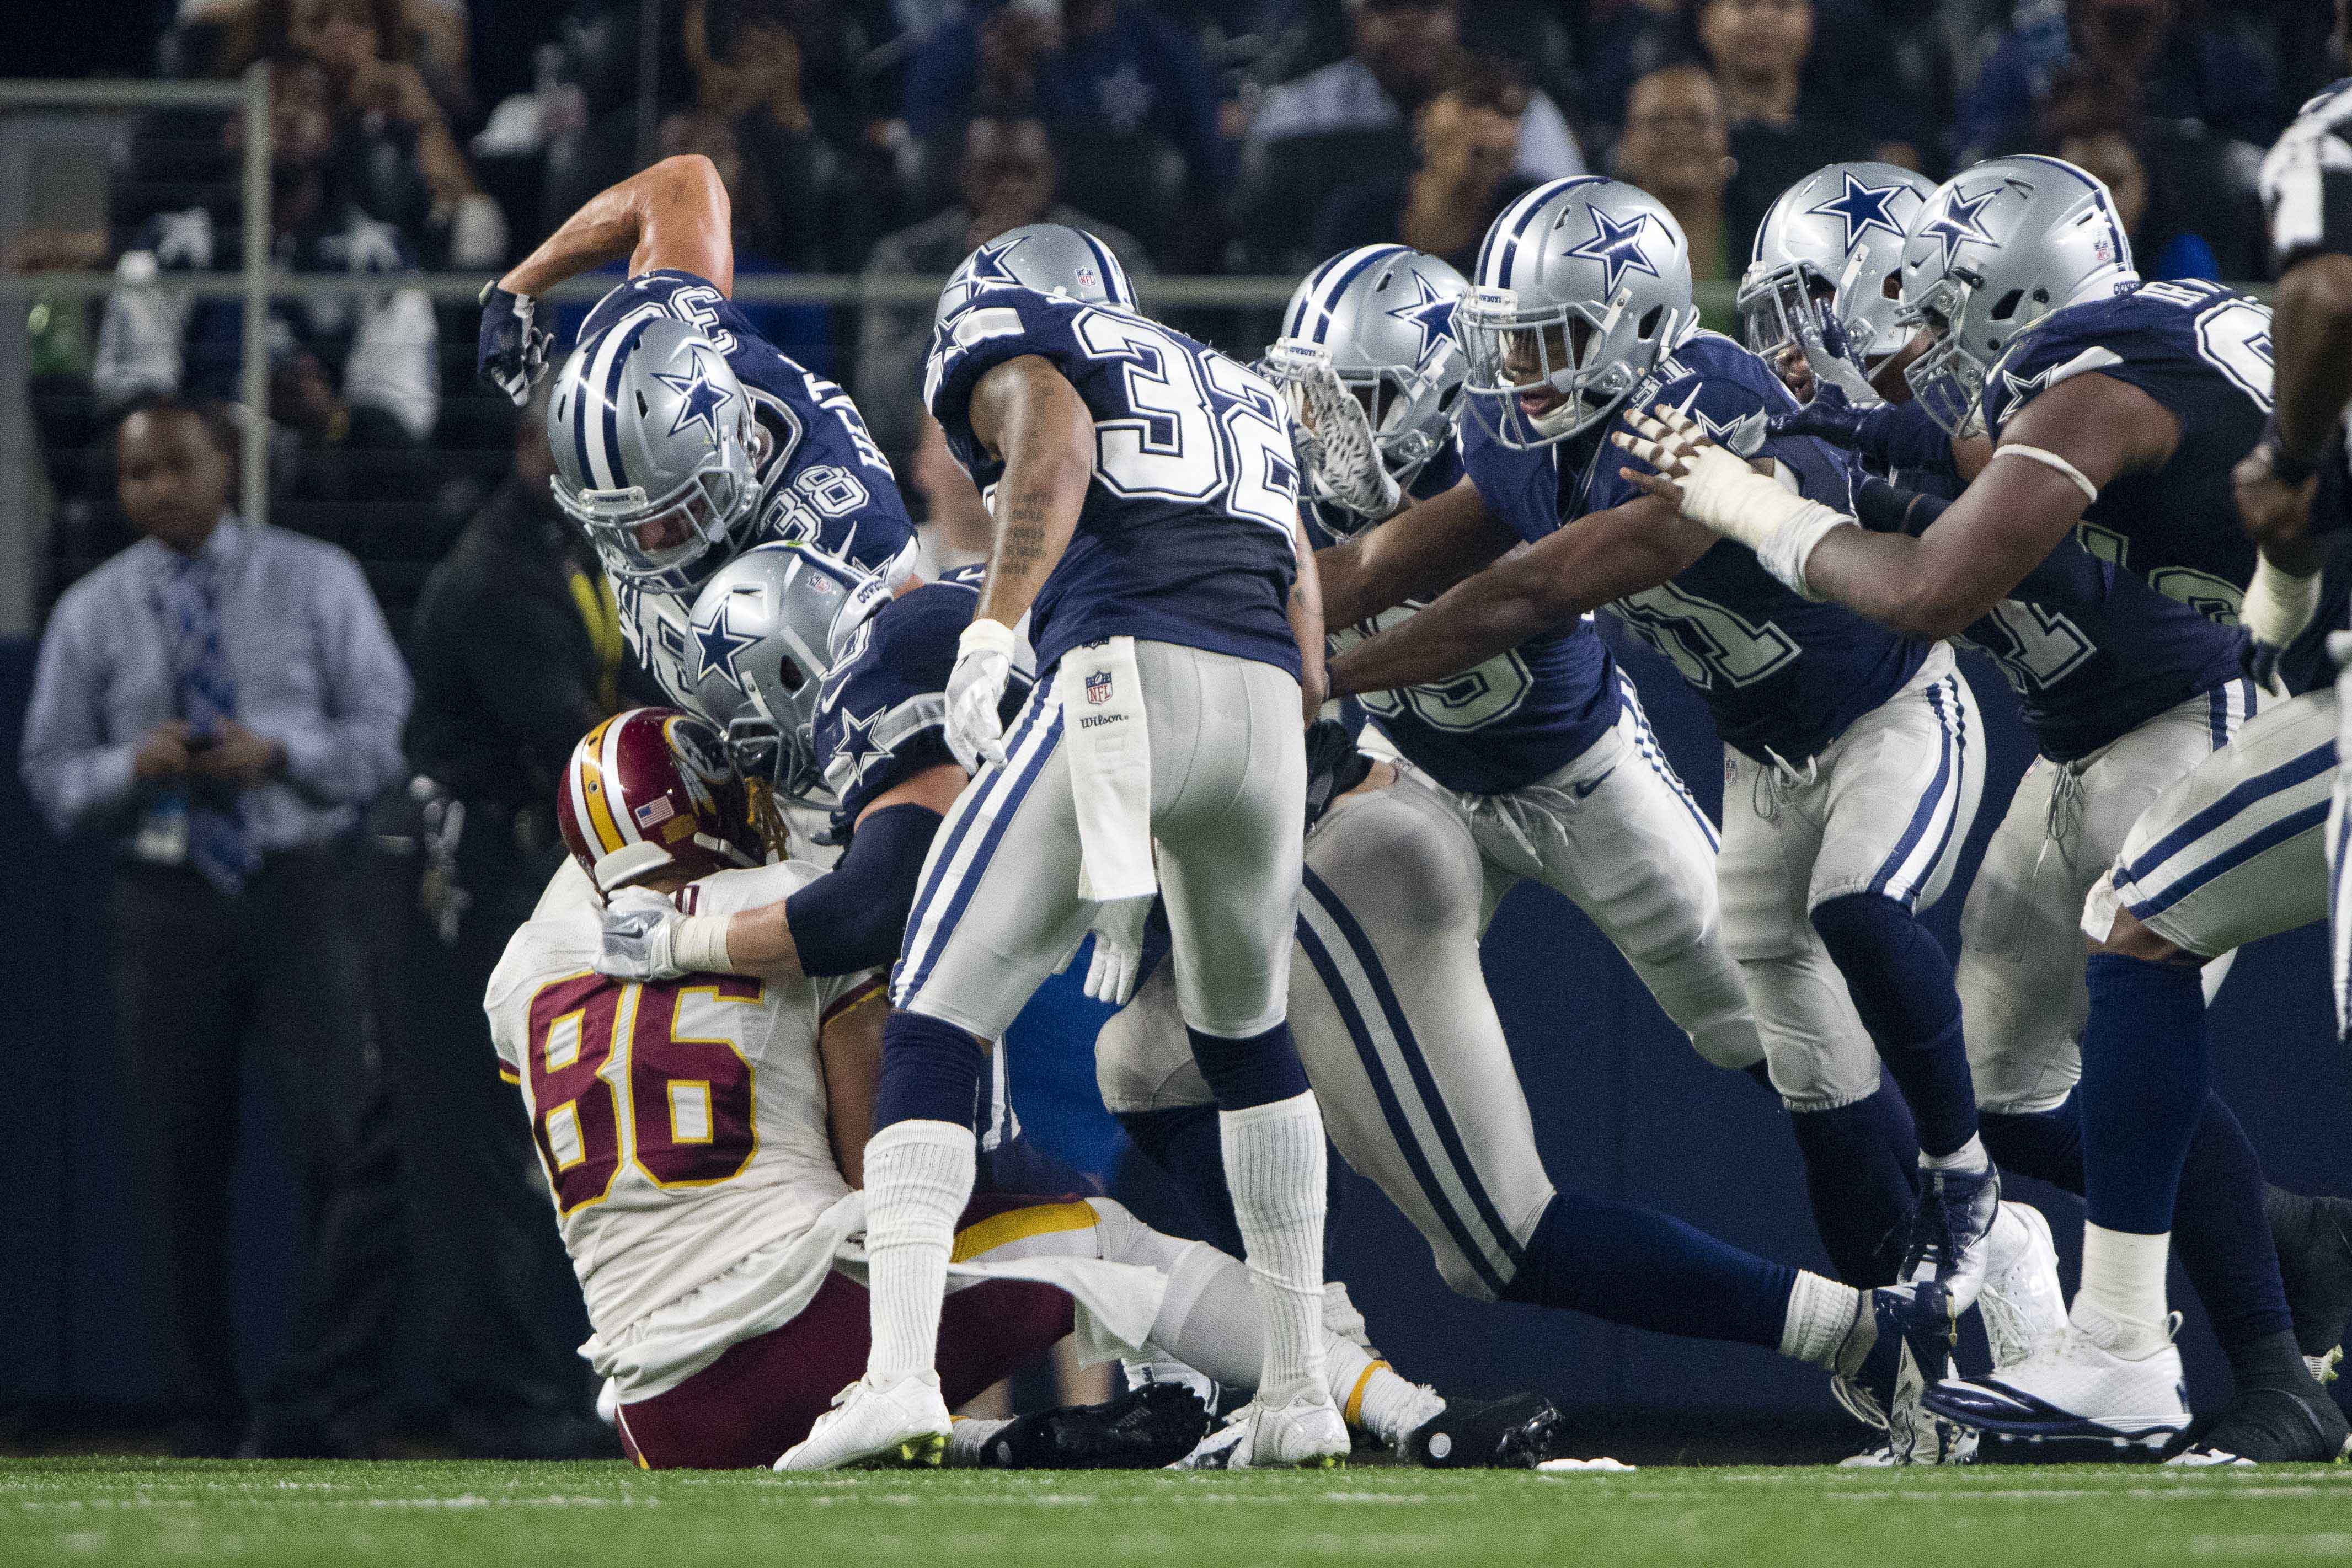 9700836-nfl-washington-redskins-at-dallas-cowboys